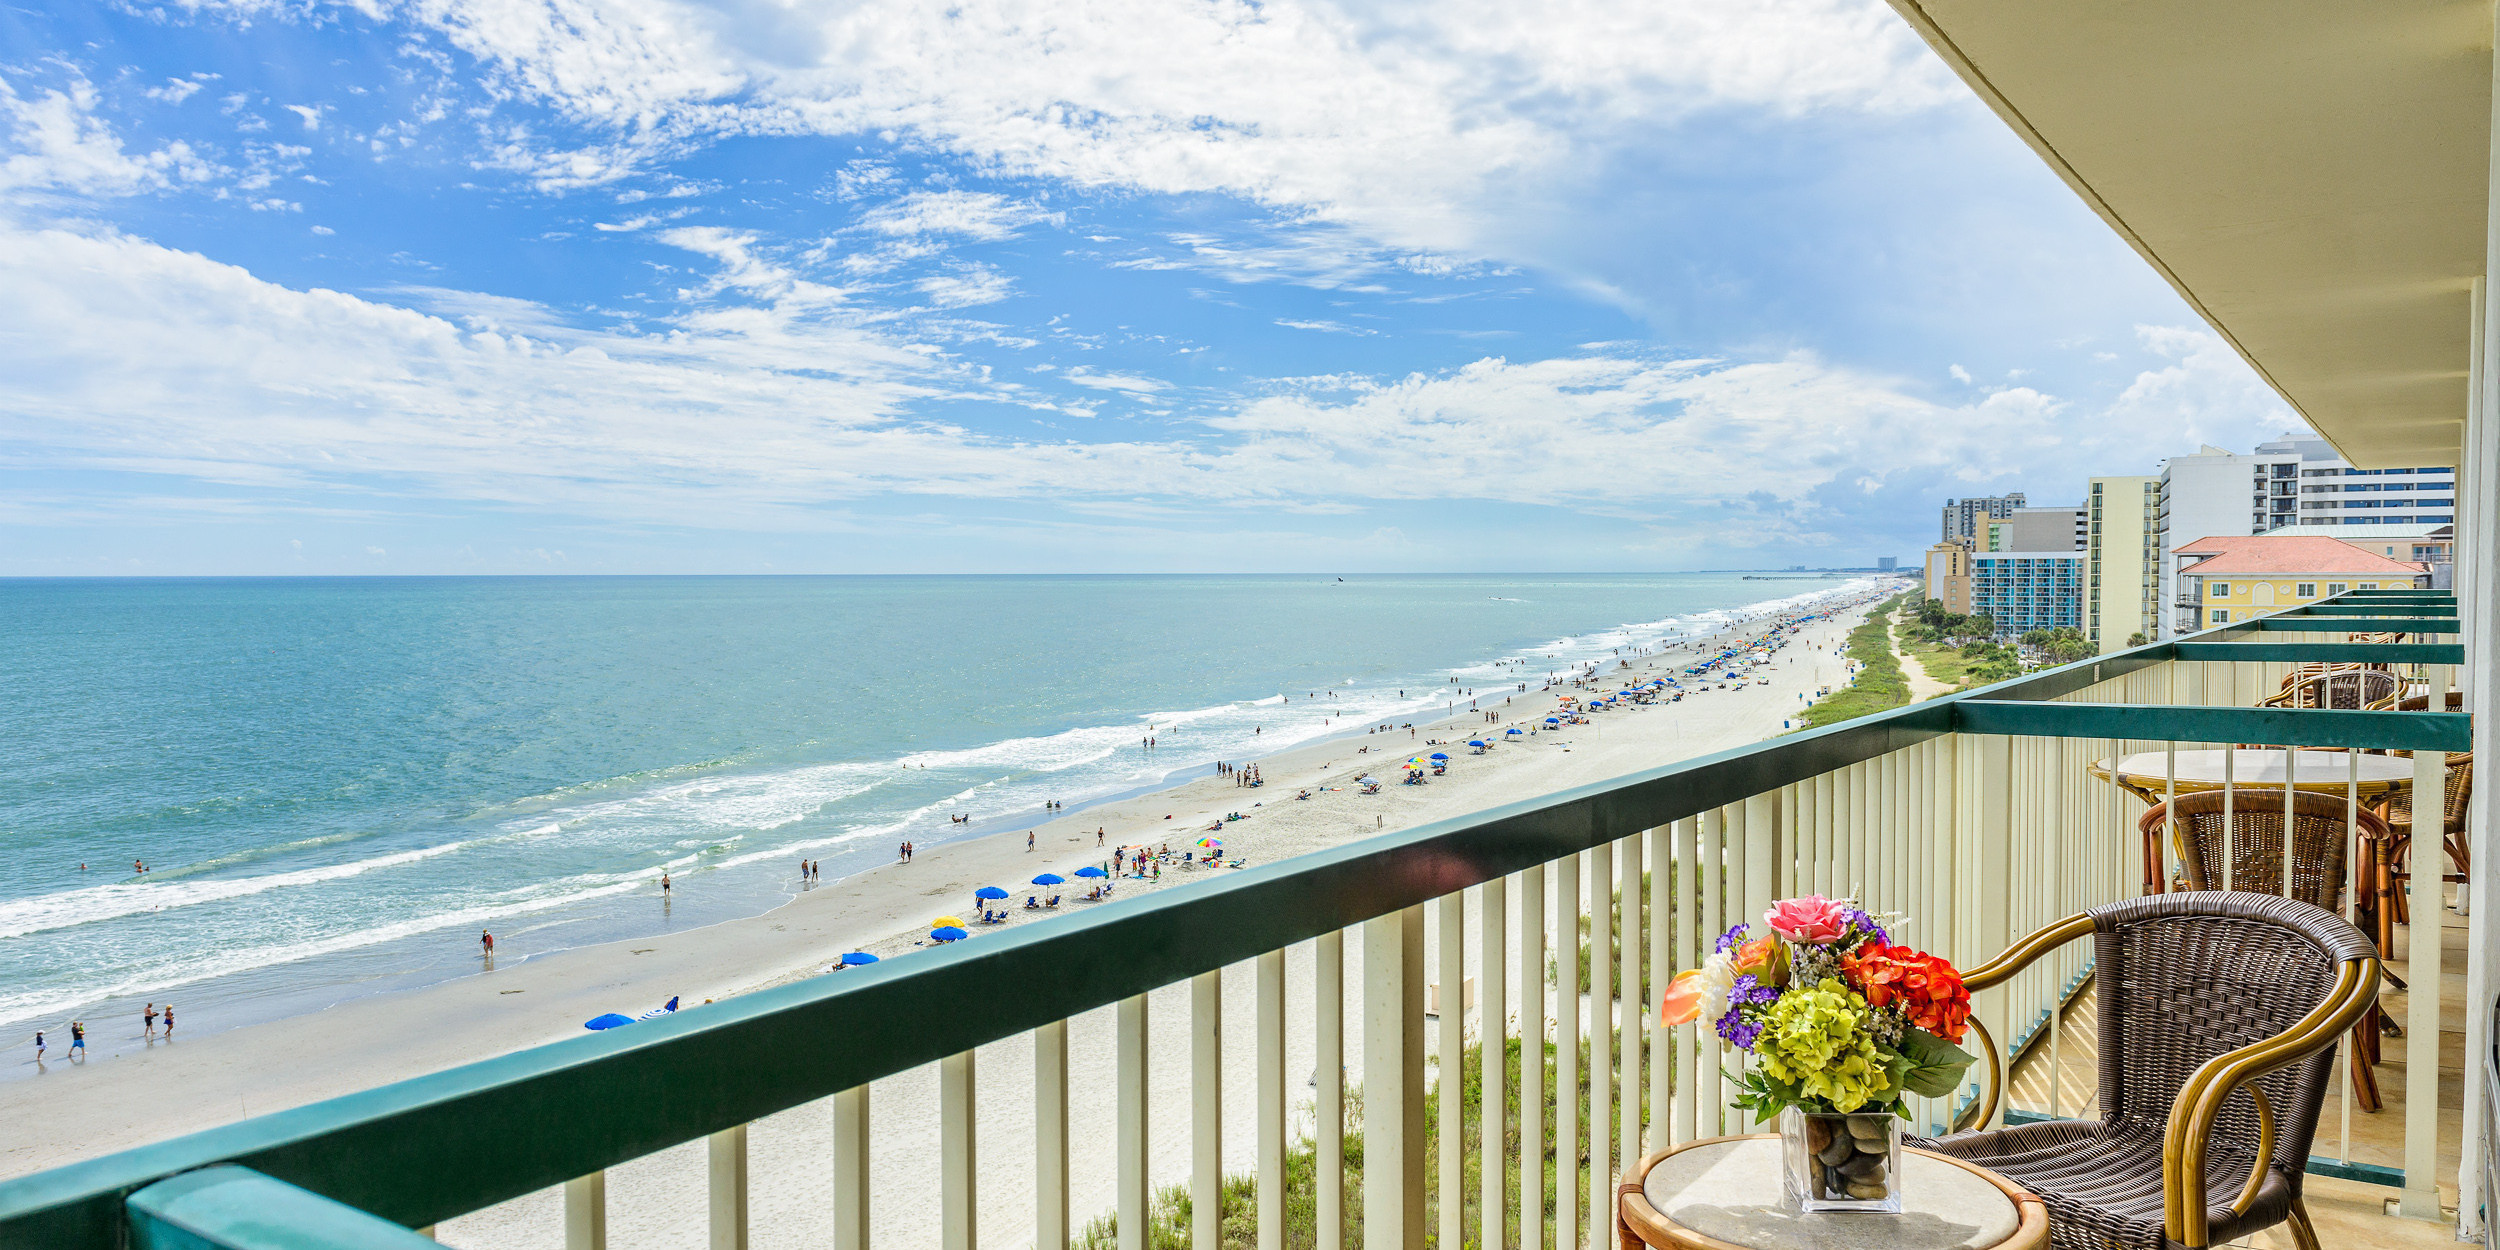 Oceanfront View From Grand Strand Resort Balcony Myrtle Beach Resorts Westgate Myrtle Beach Oceanfront